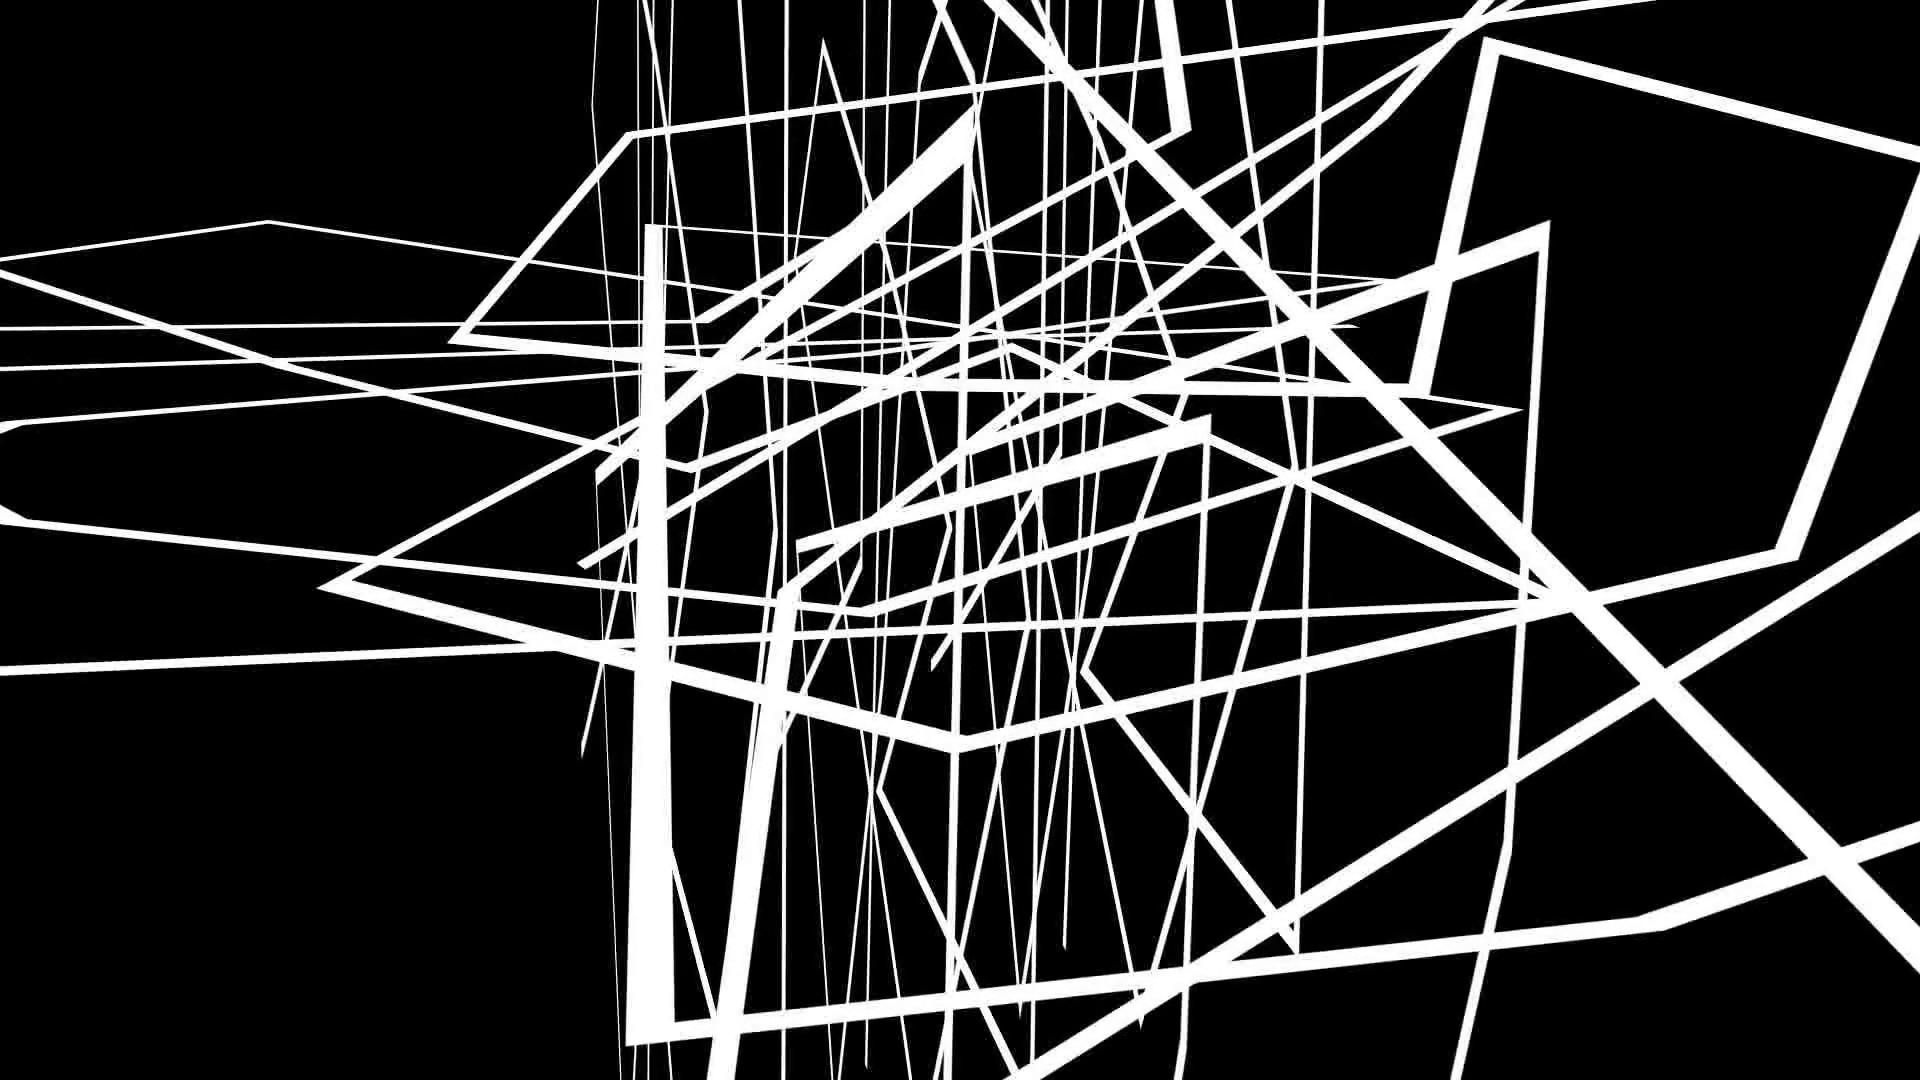 Subscription Library animation – Abstract motion graphics on black  background with criss cross white lines